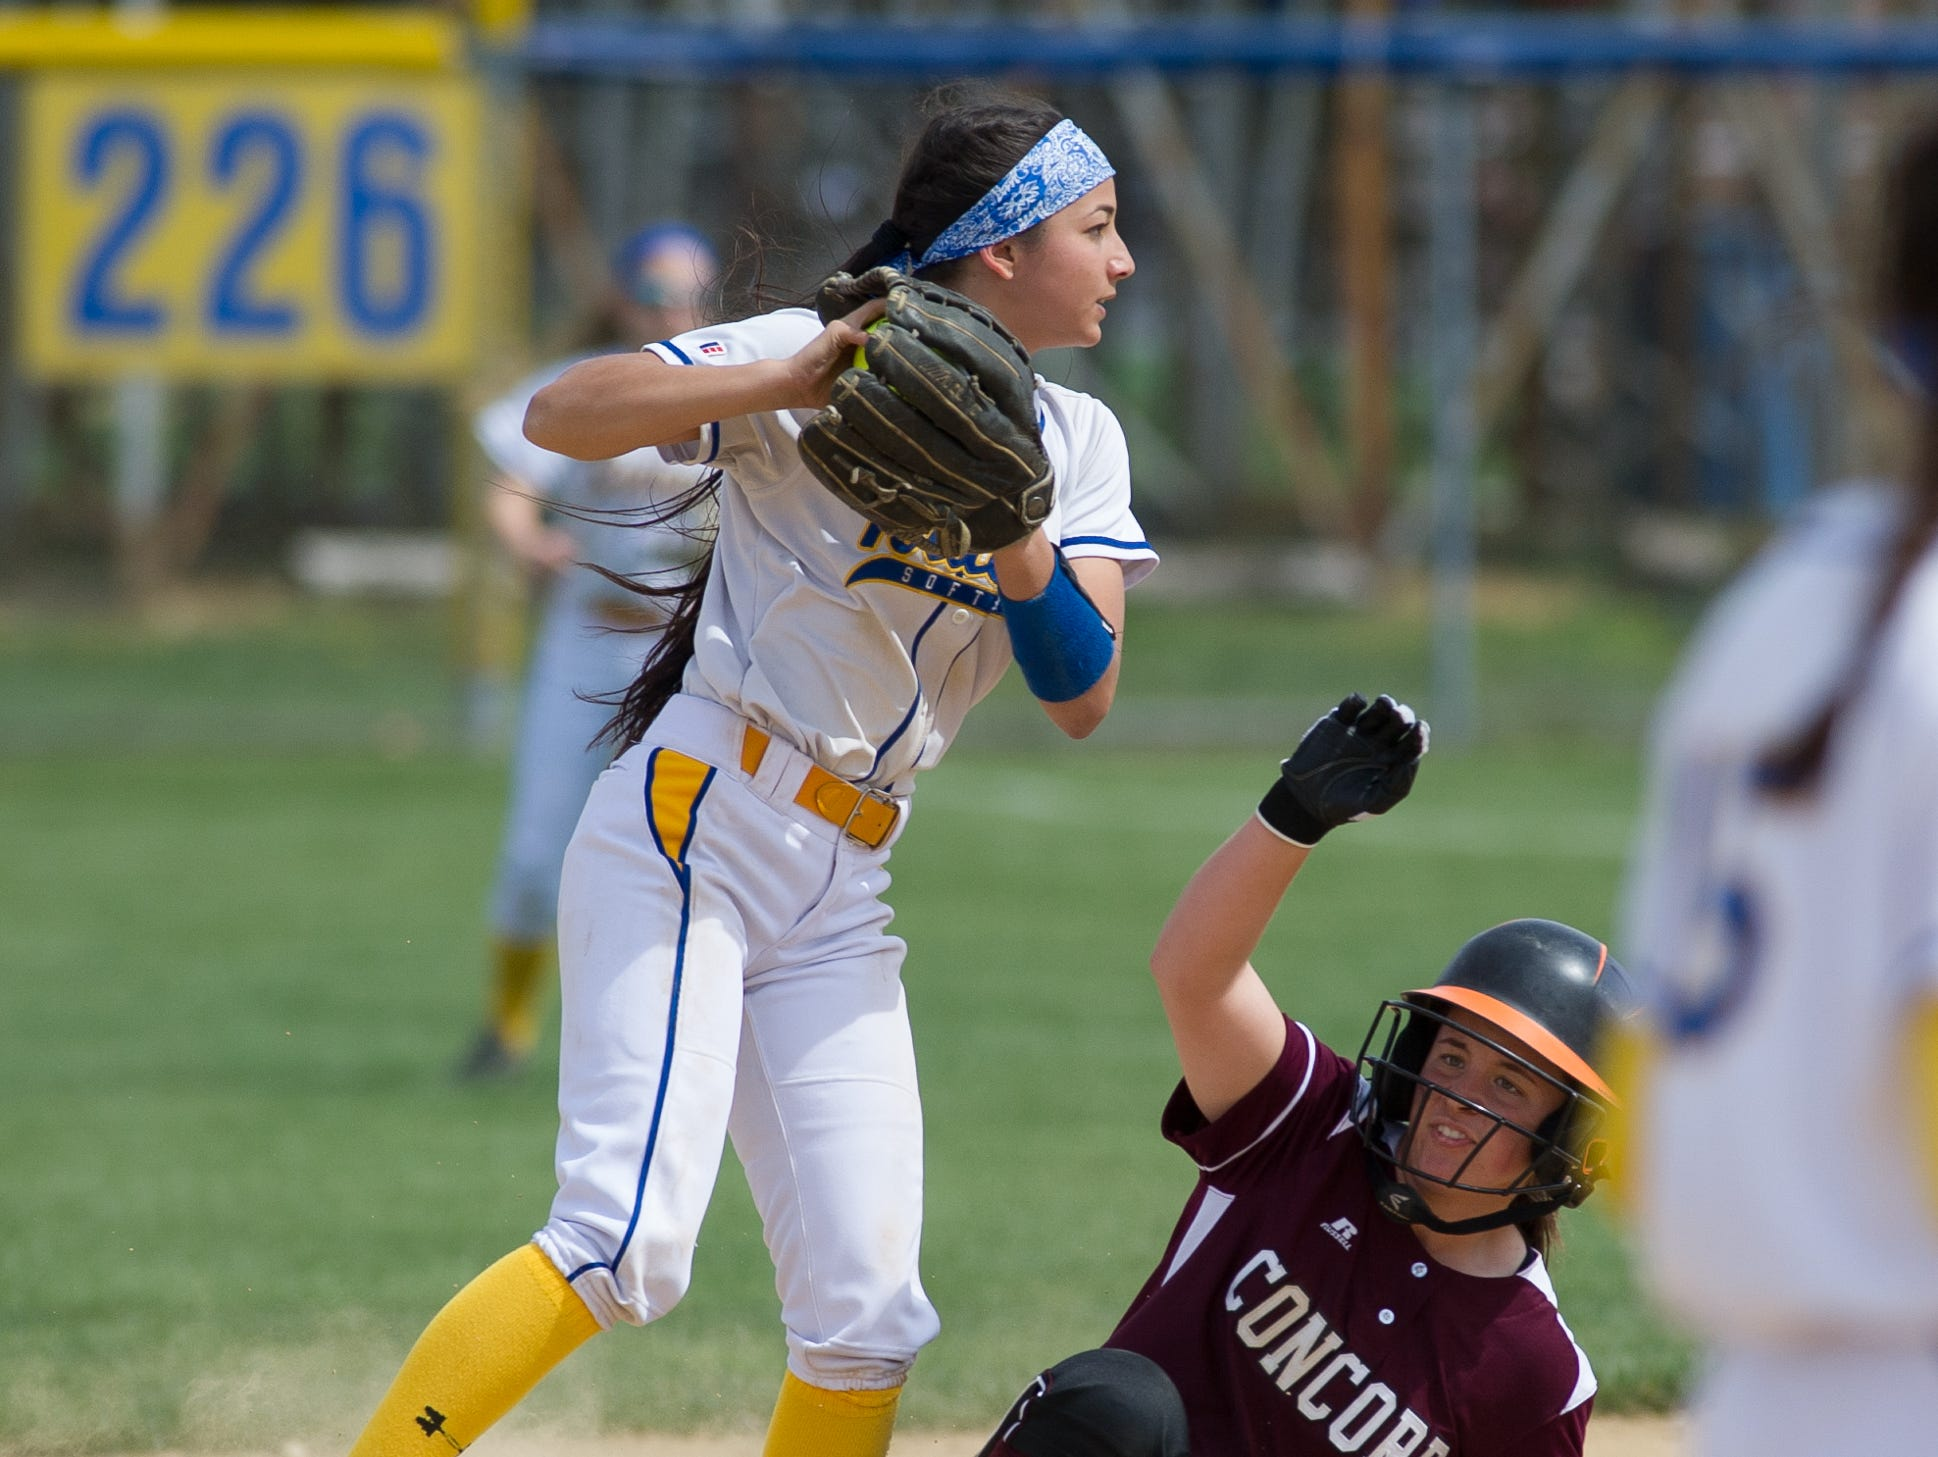 Caesar Rodney's Kendall Lewis (2) tags out Concord's Eryn Bailey (8) at second base.